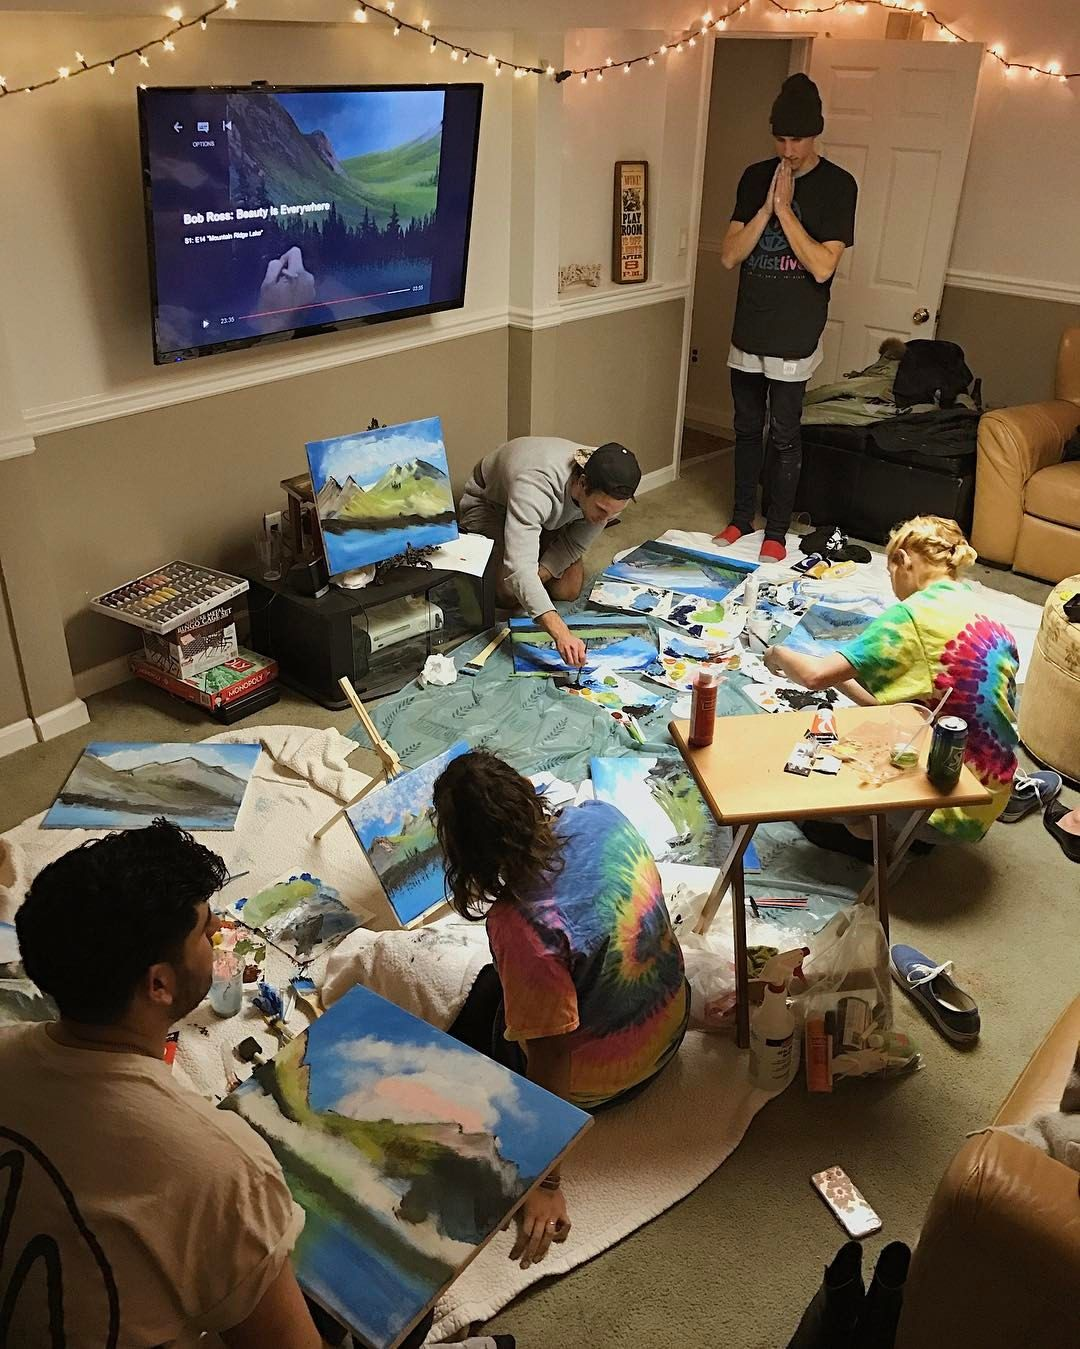 See This Instagram Photo By Brovegna 2 267 Likes Had A Bob Ross Painting Party For The Birthday Best Day Ev Bob Ross Birthday Bob Ross Paintings Bob Ross